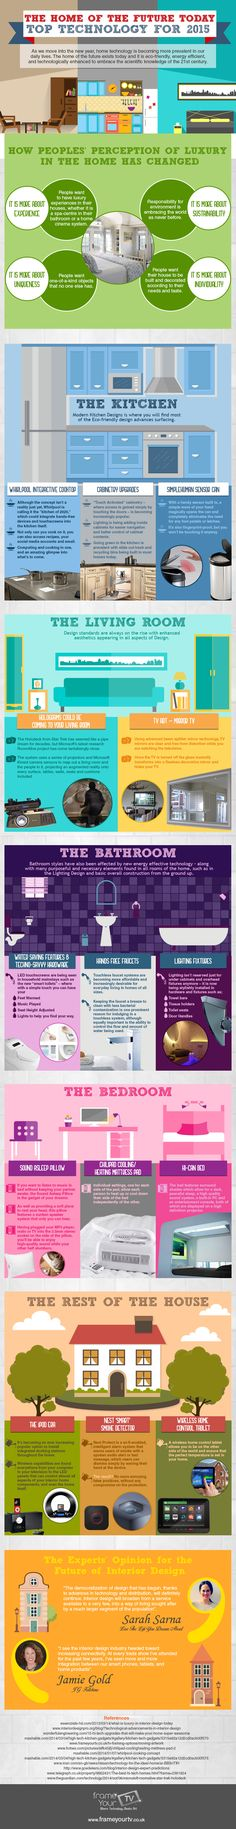 The Home of the Future Top Technology for 2015 #infographic #Home #HomeImprovement #Technology